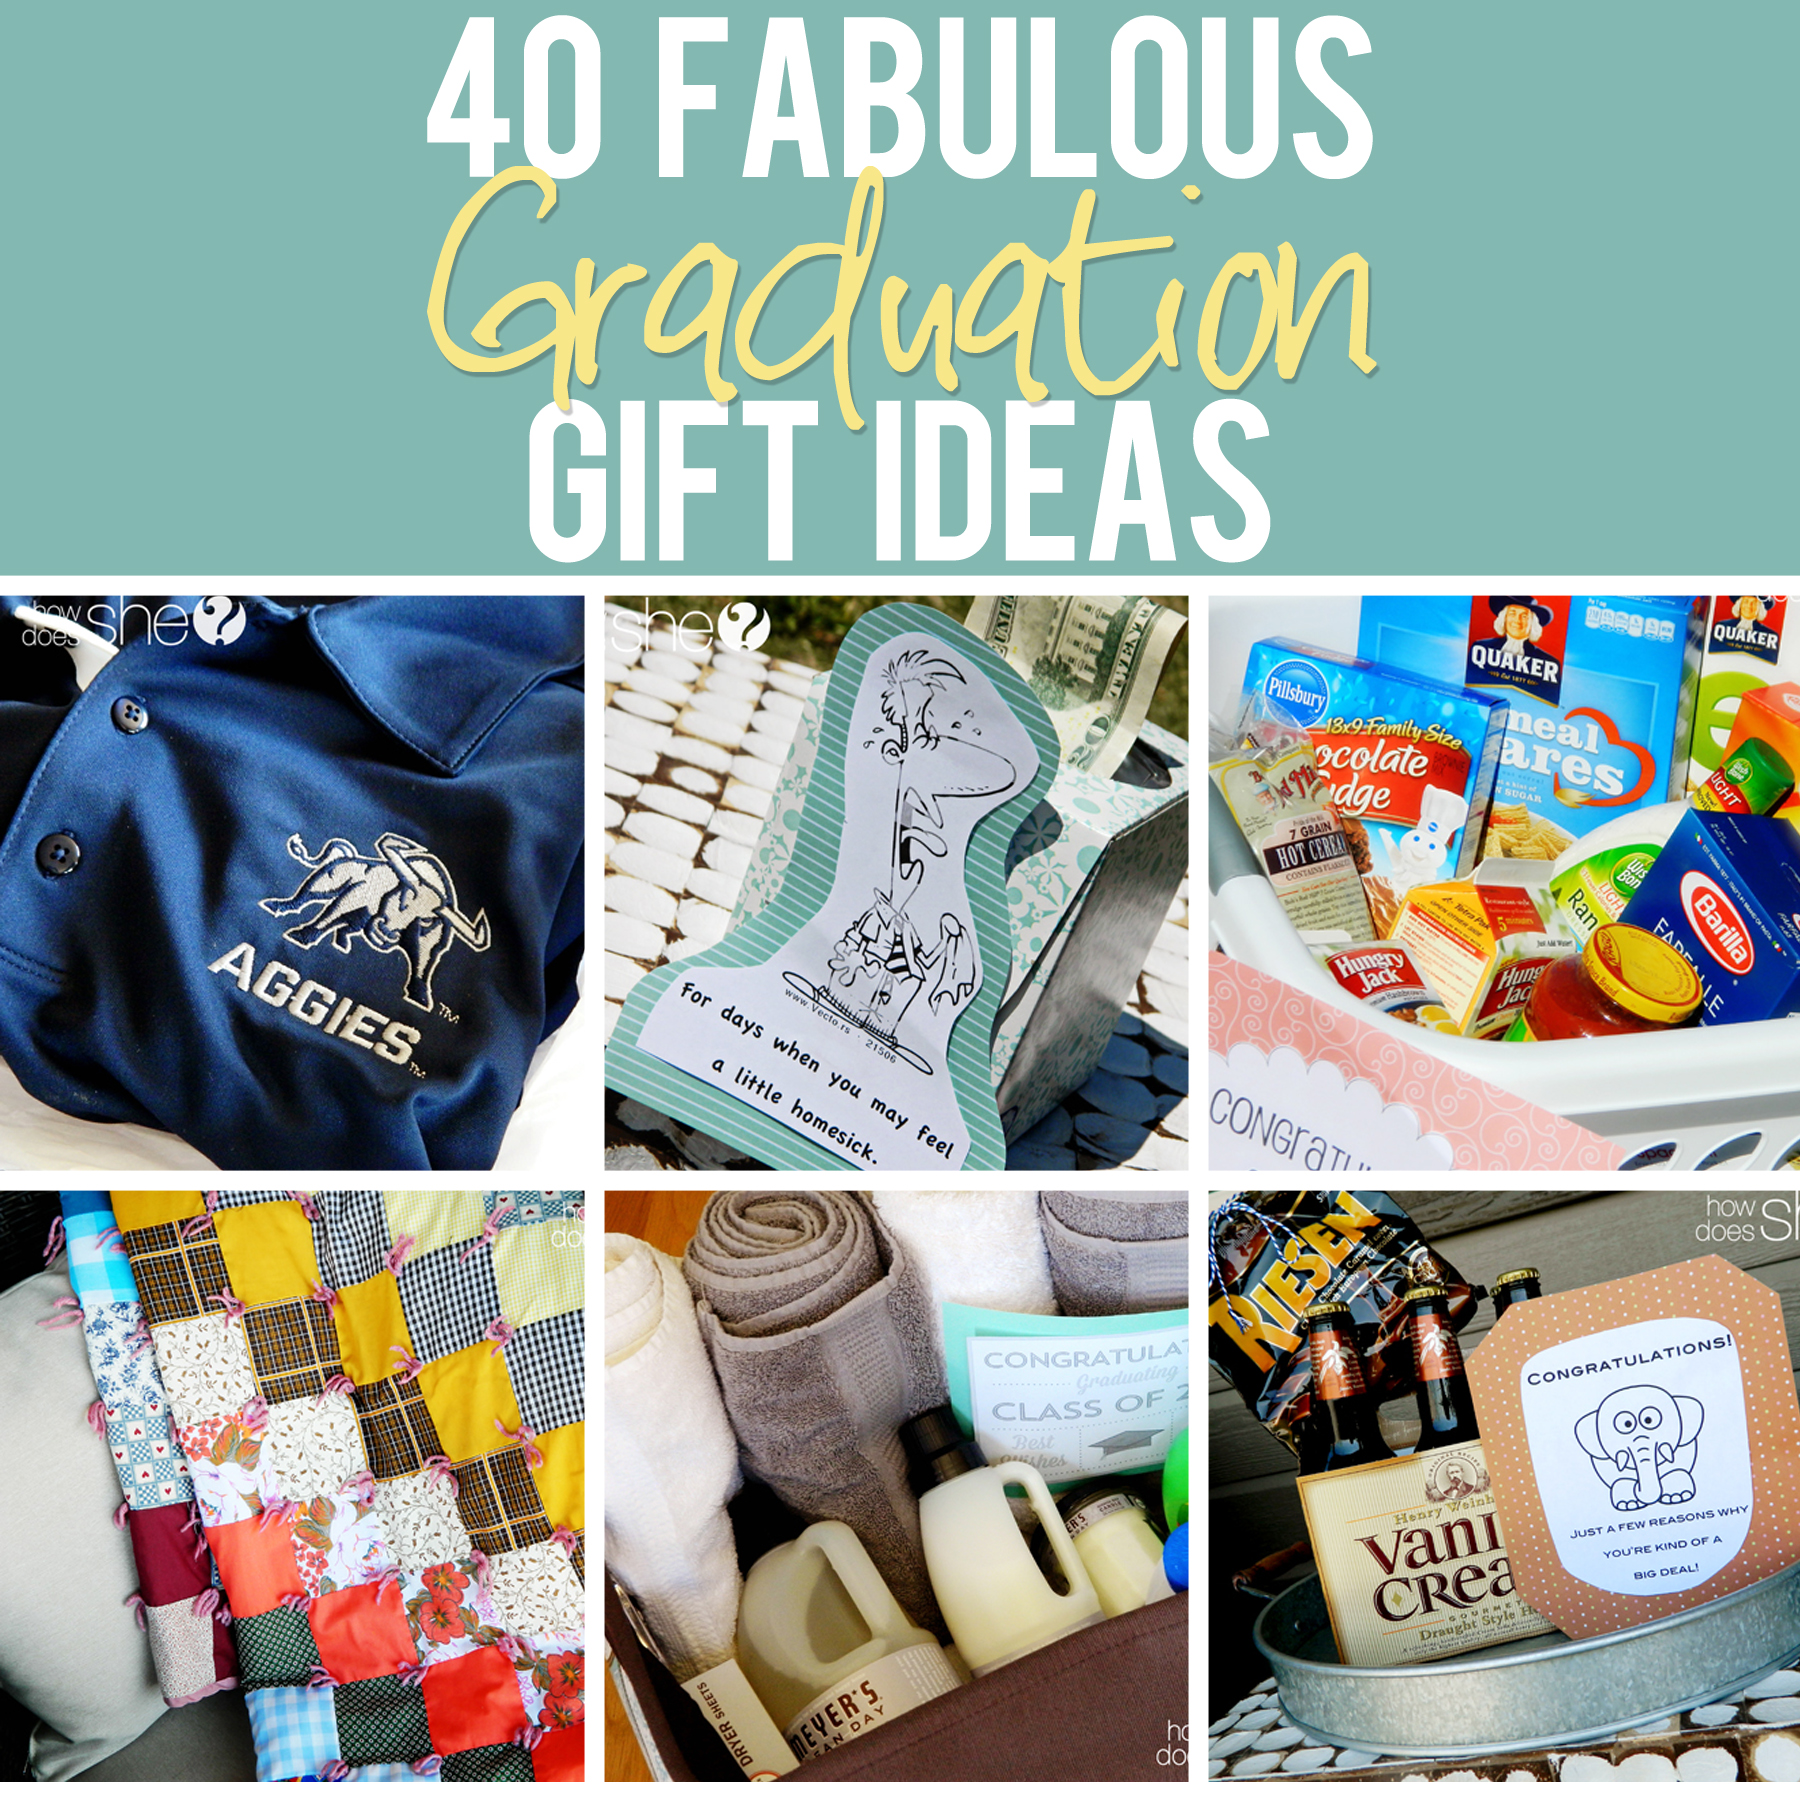 Graduation gift ideas that are perfect for any graduate 40 graduation gift ideas howdoesshe graduationgiftideas solutioingenieria Images